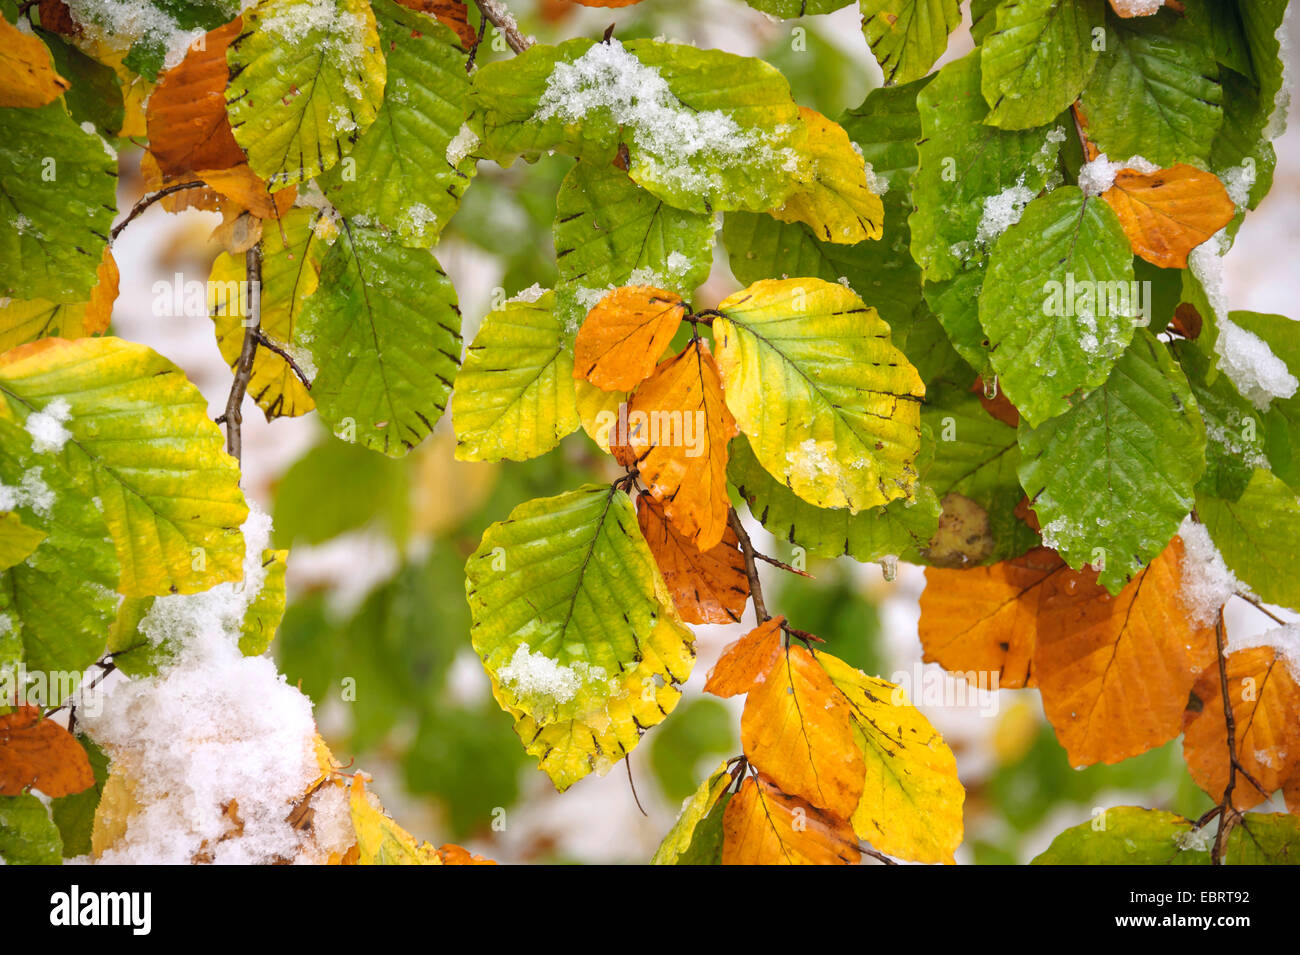 common beech (Fagus sylvatica), autumn leaves with snow, Germany, Saxony - Stock Image